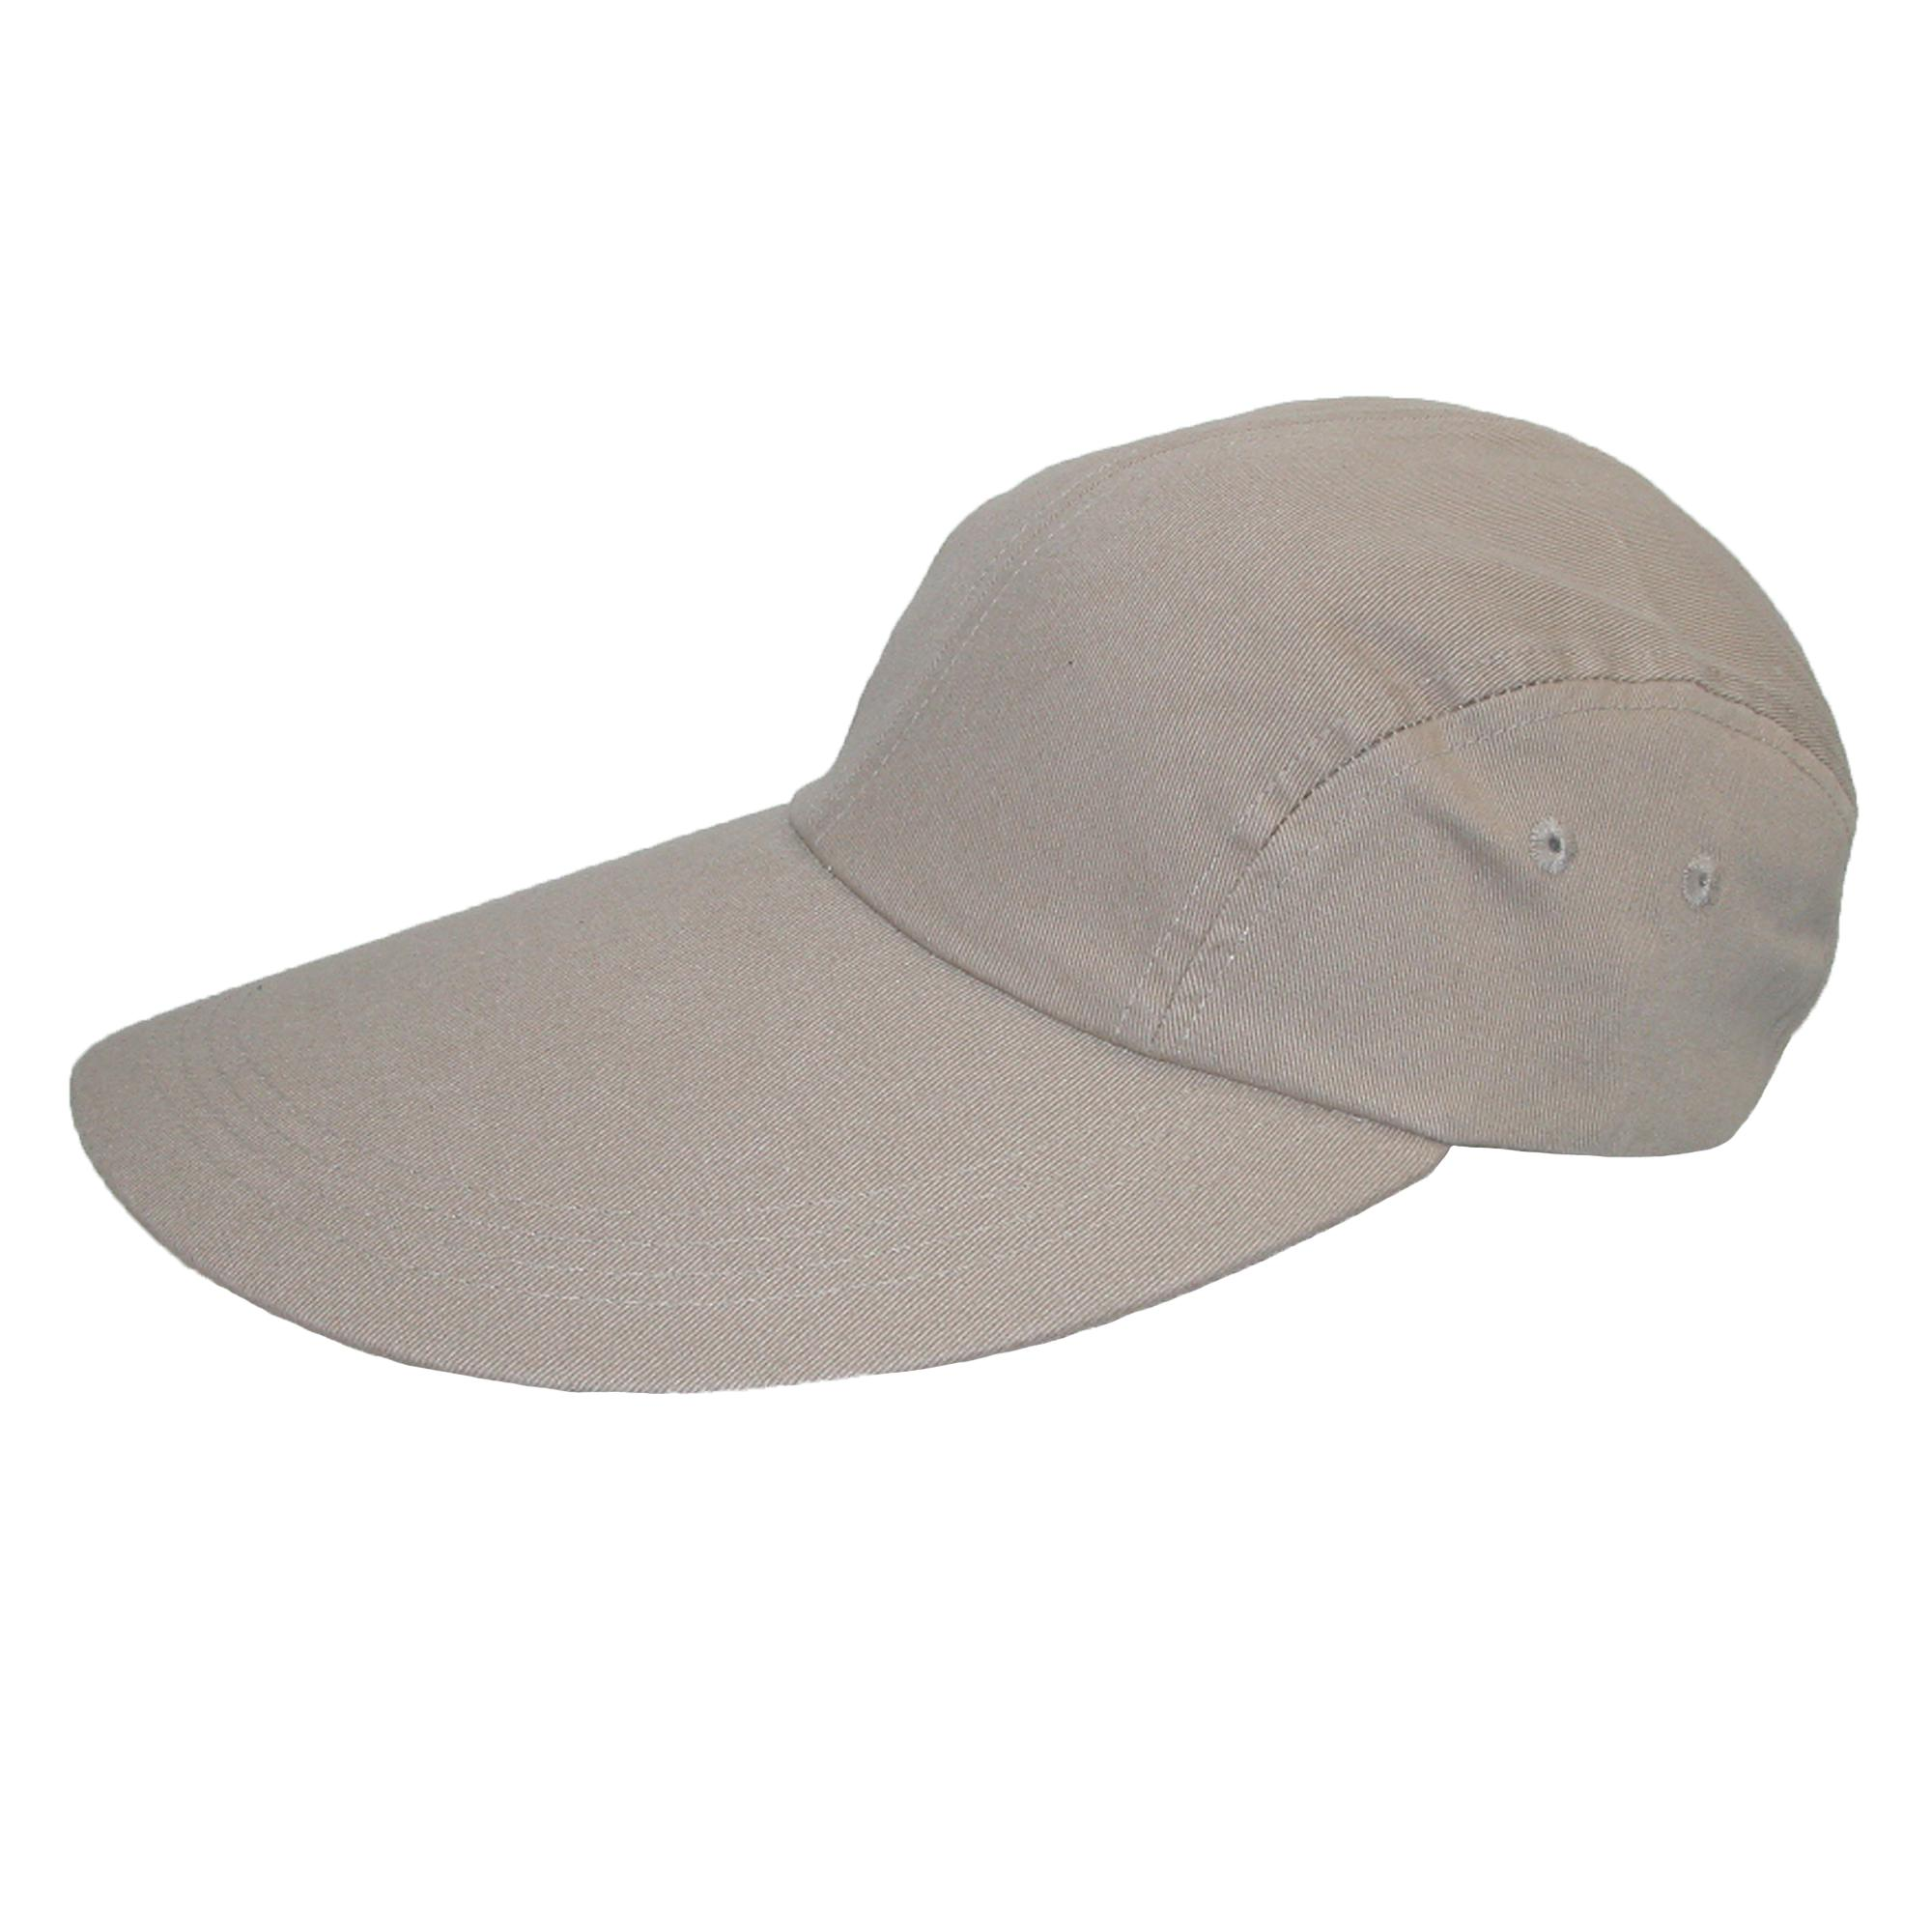 New ctm cotton long 5 inch bill visor baseball cap ebay for Long bill fishing hat